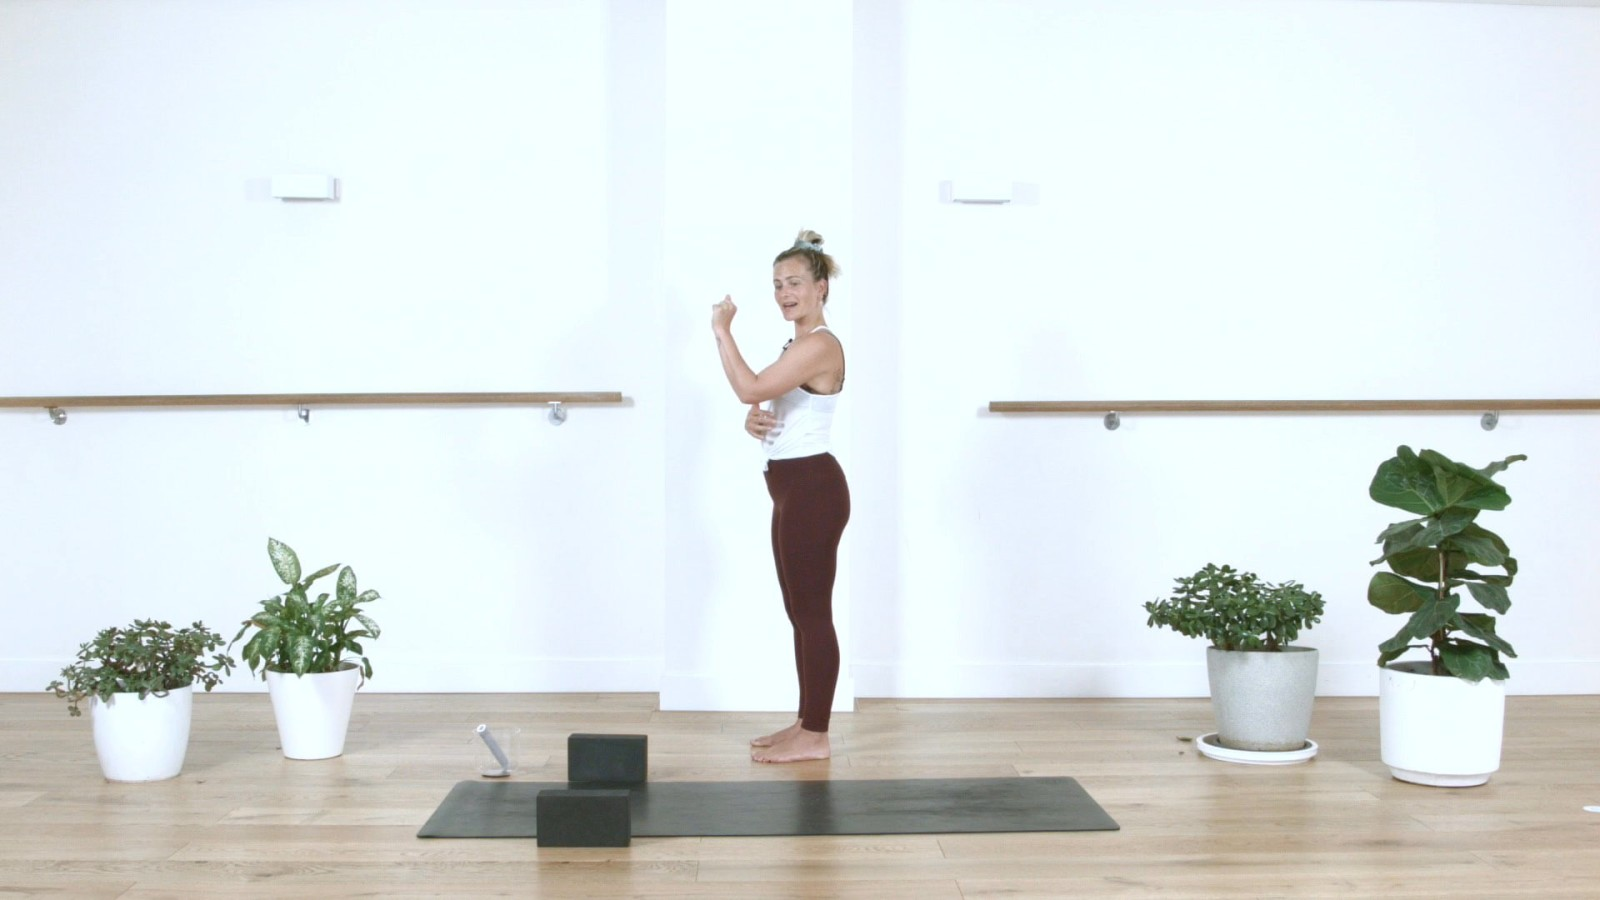 Arm Balance Prep & Play with Sarah Routhier